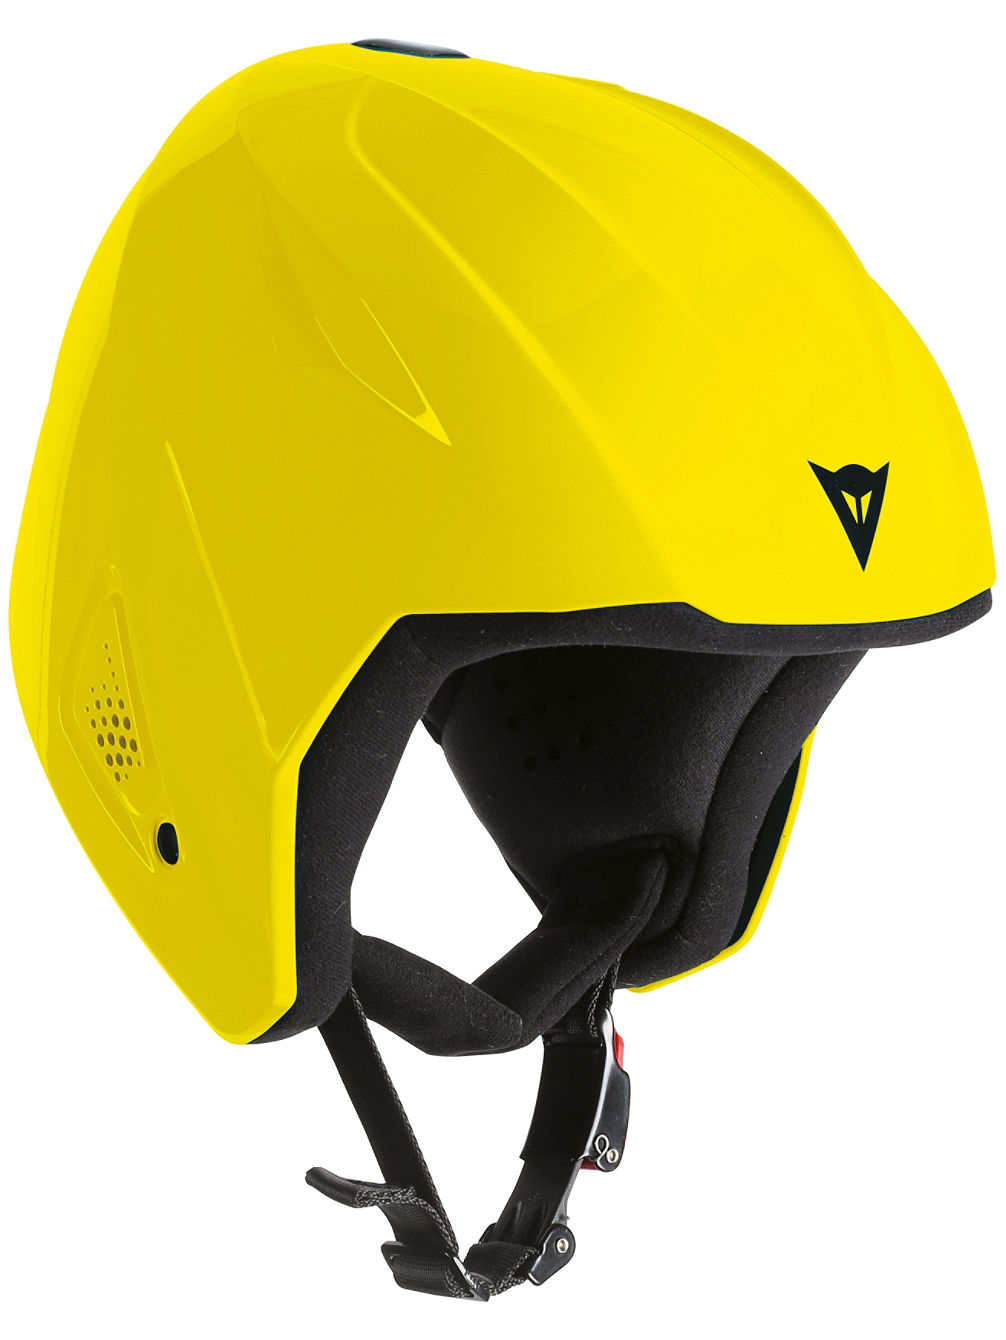 Snow Team Evo Snowboard Casco You